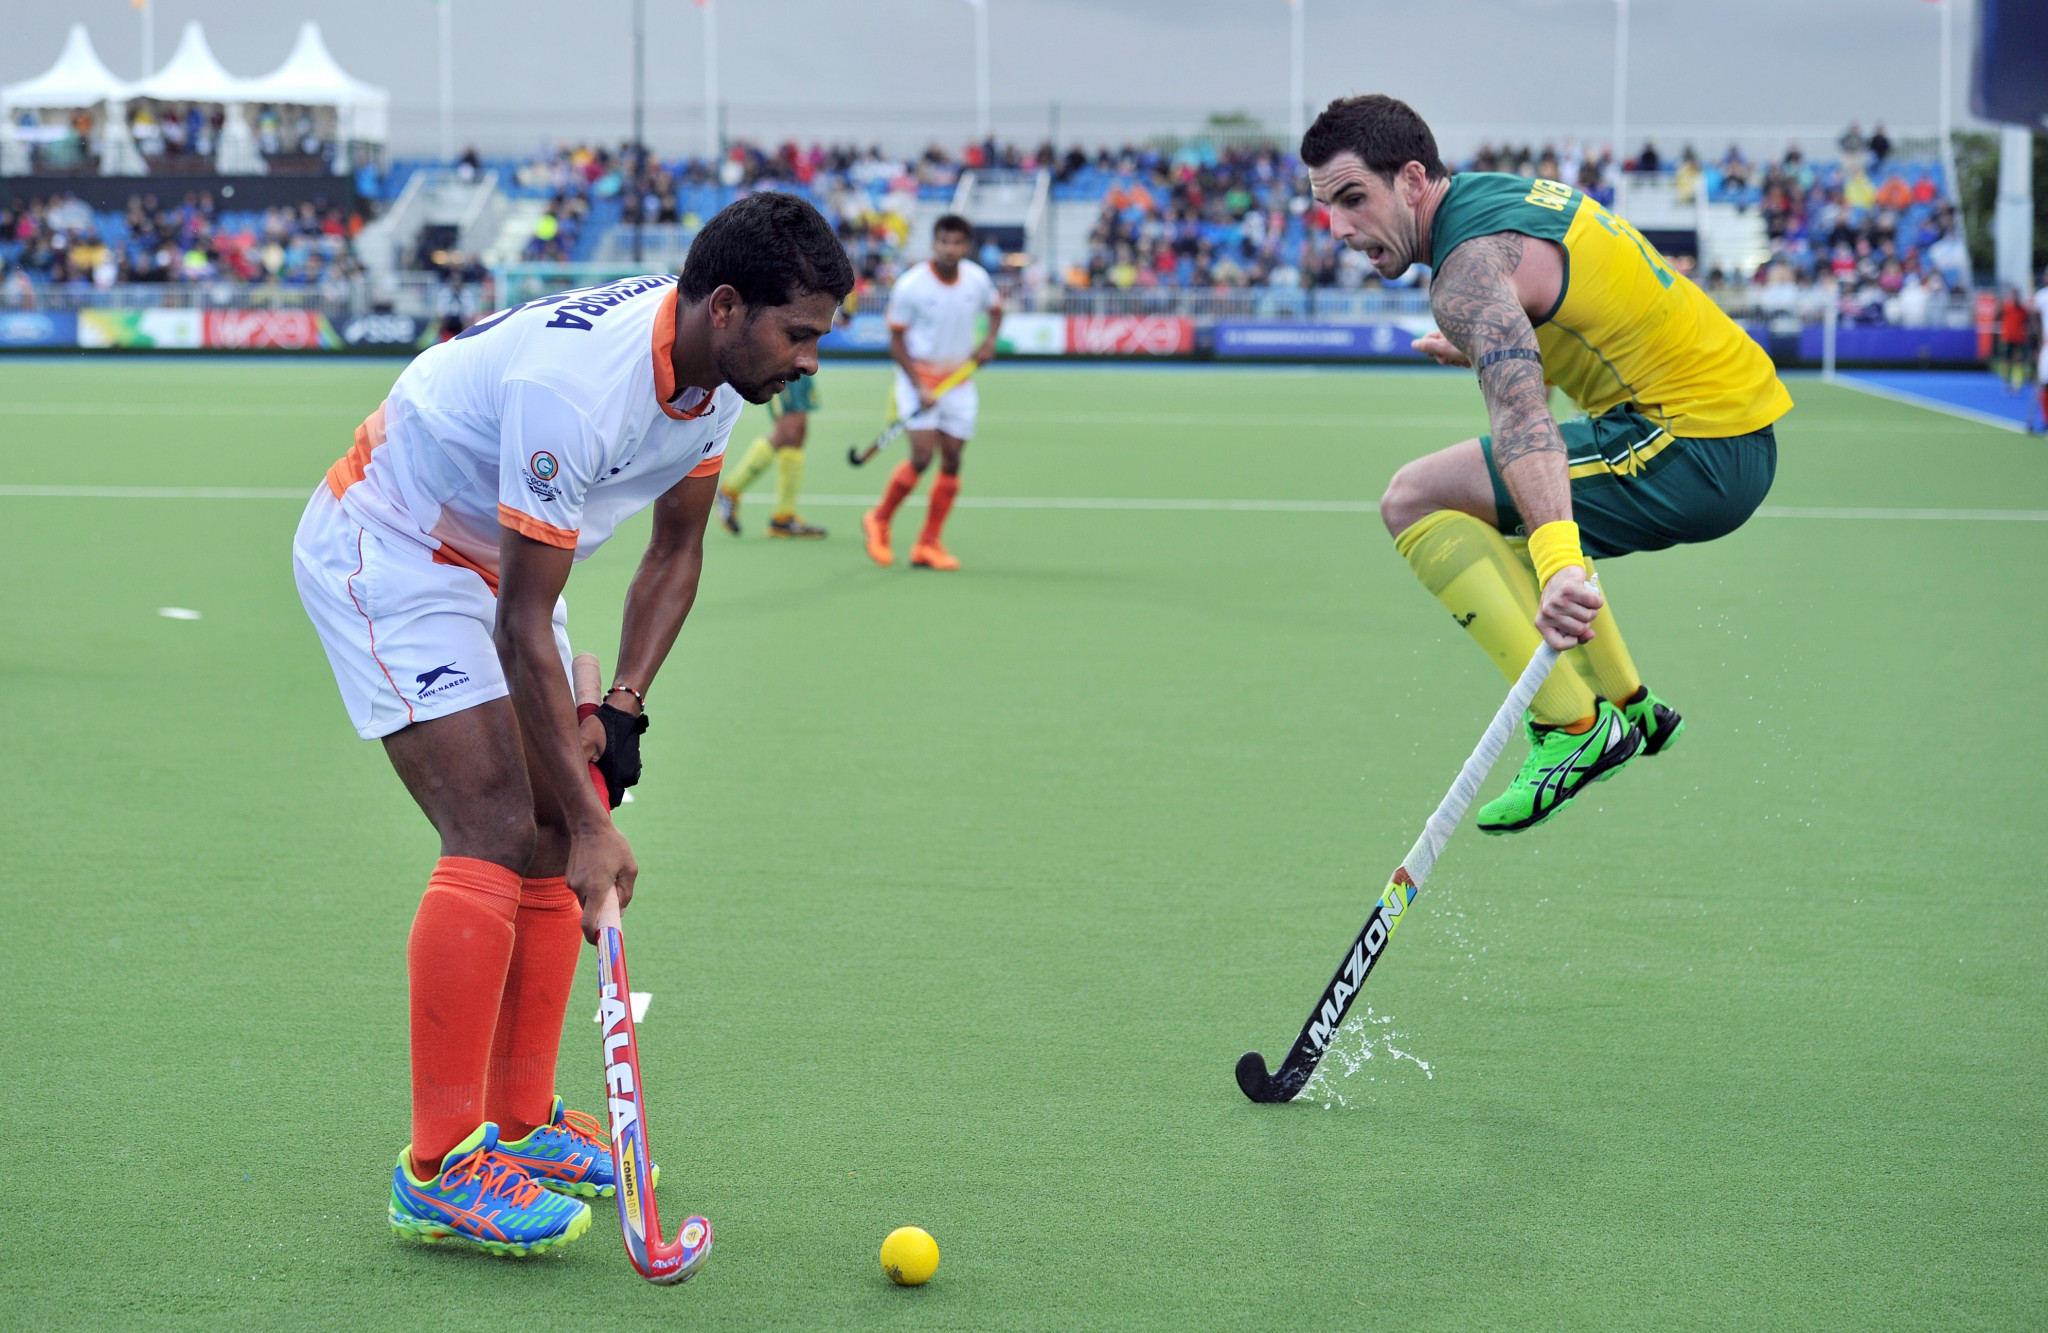 India lost the Glasgow 2014 men's hockey final to Australia ©Getty Images